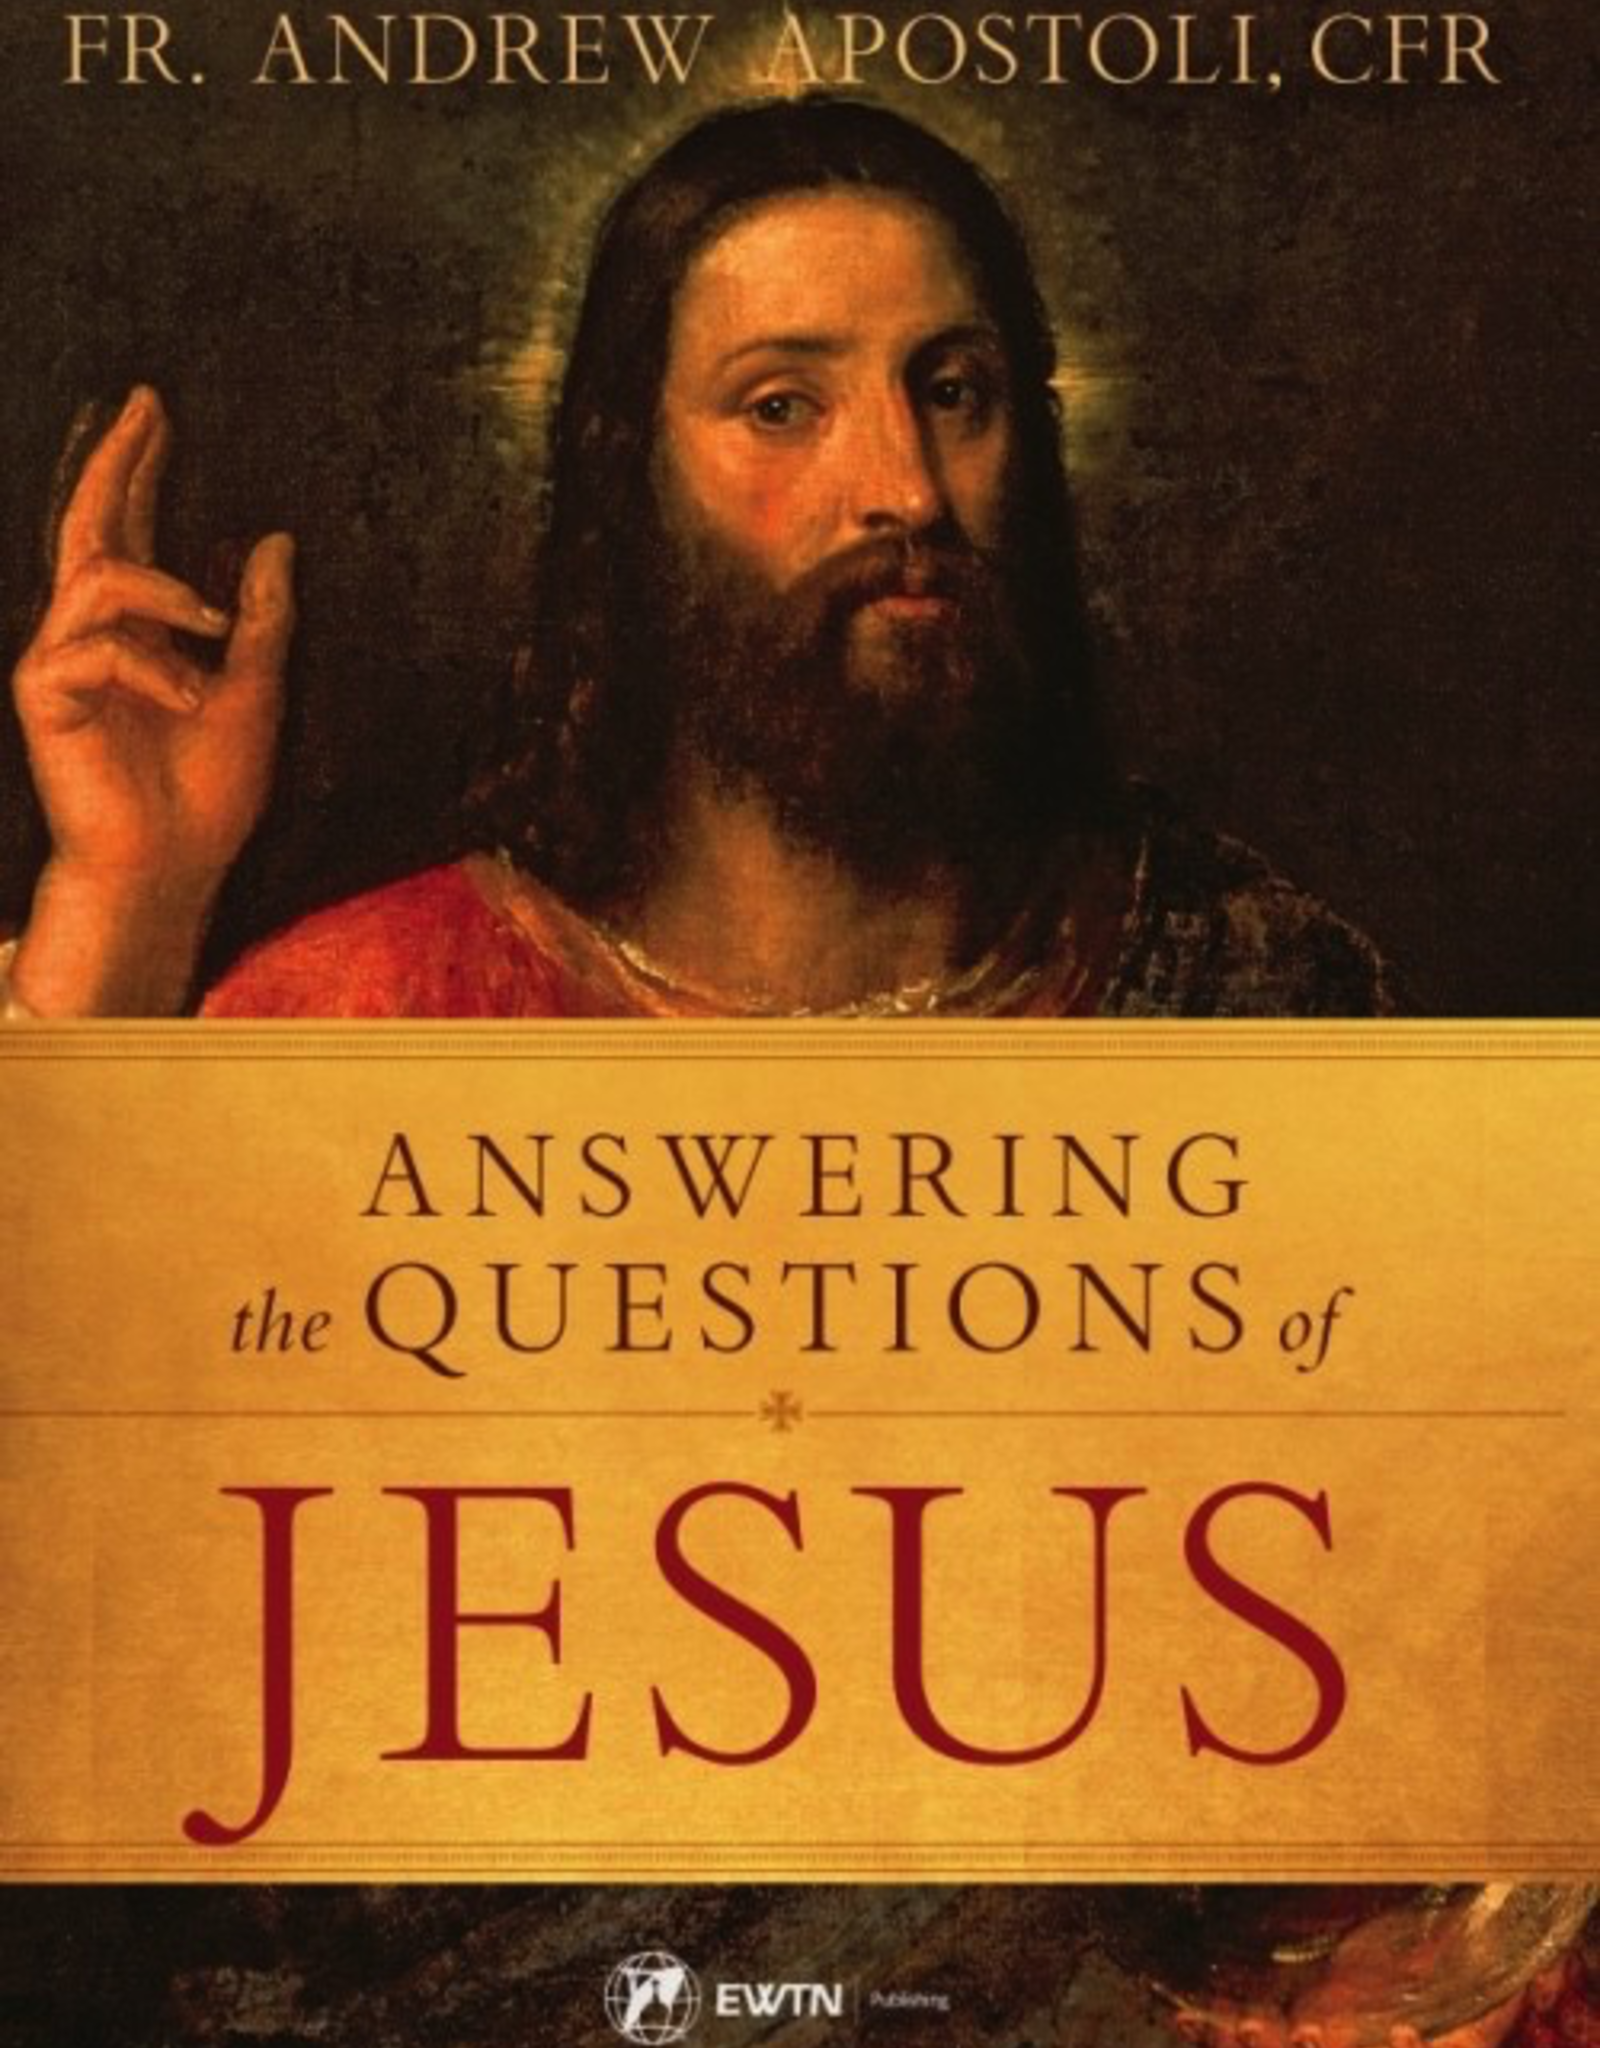 Sophia Institute Answering the Questions of Jesus, by Amdrew Apostoli (paperback)